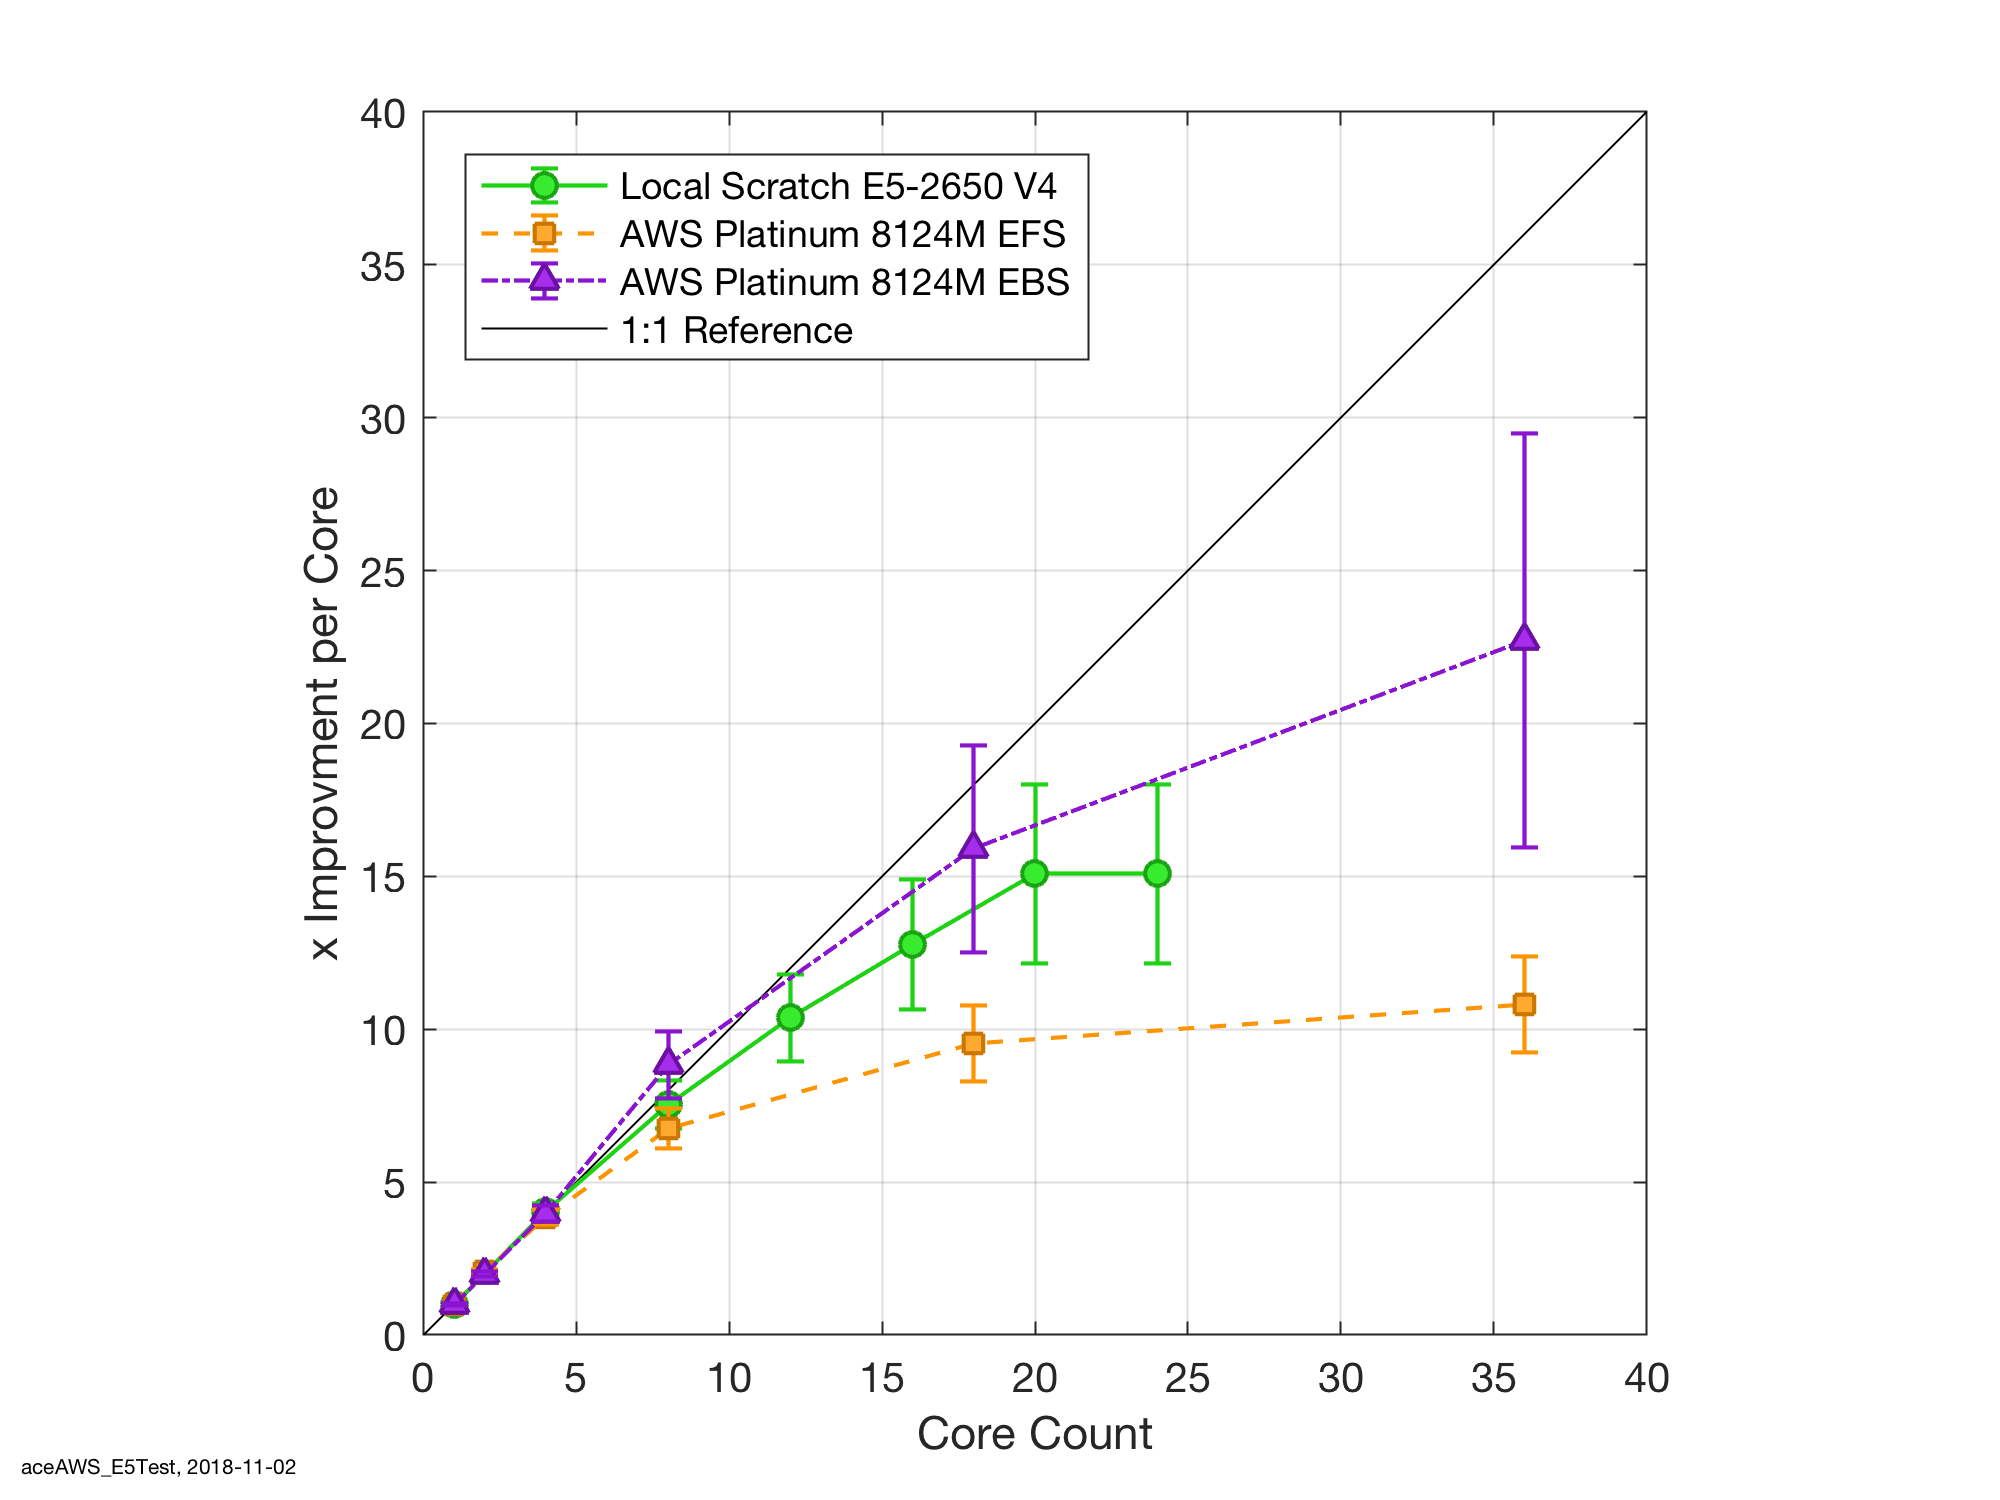 Performance increase with core count for local scratch verses AWS EFS and EBS